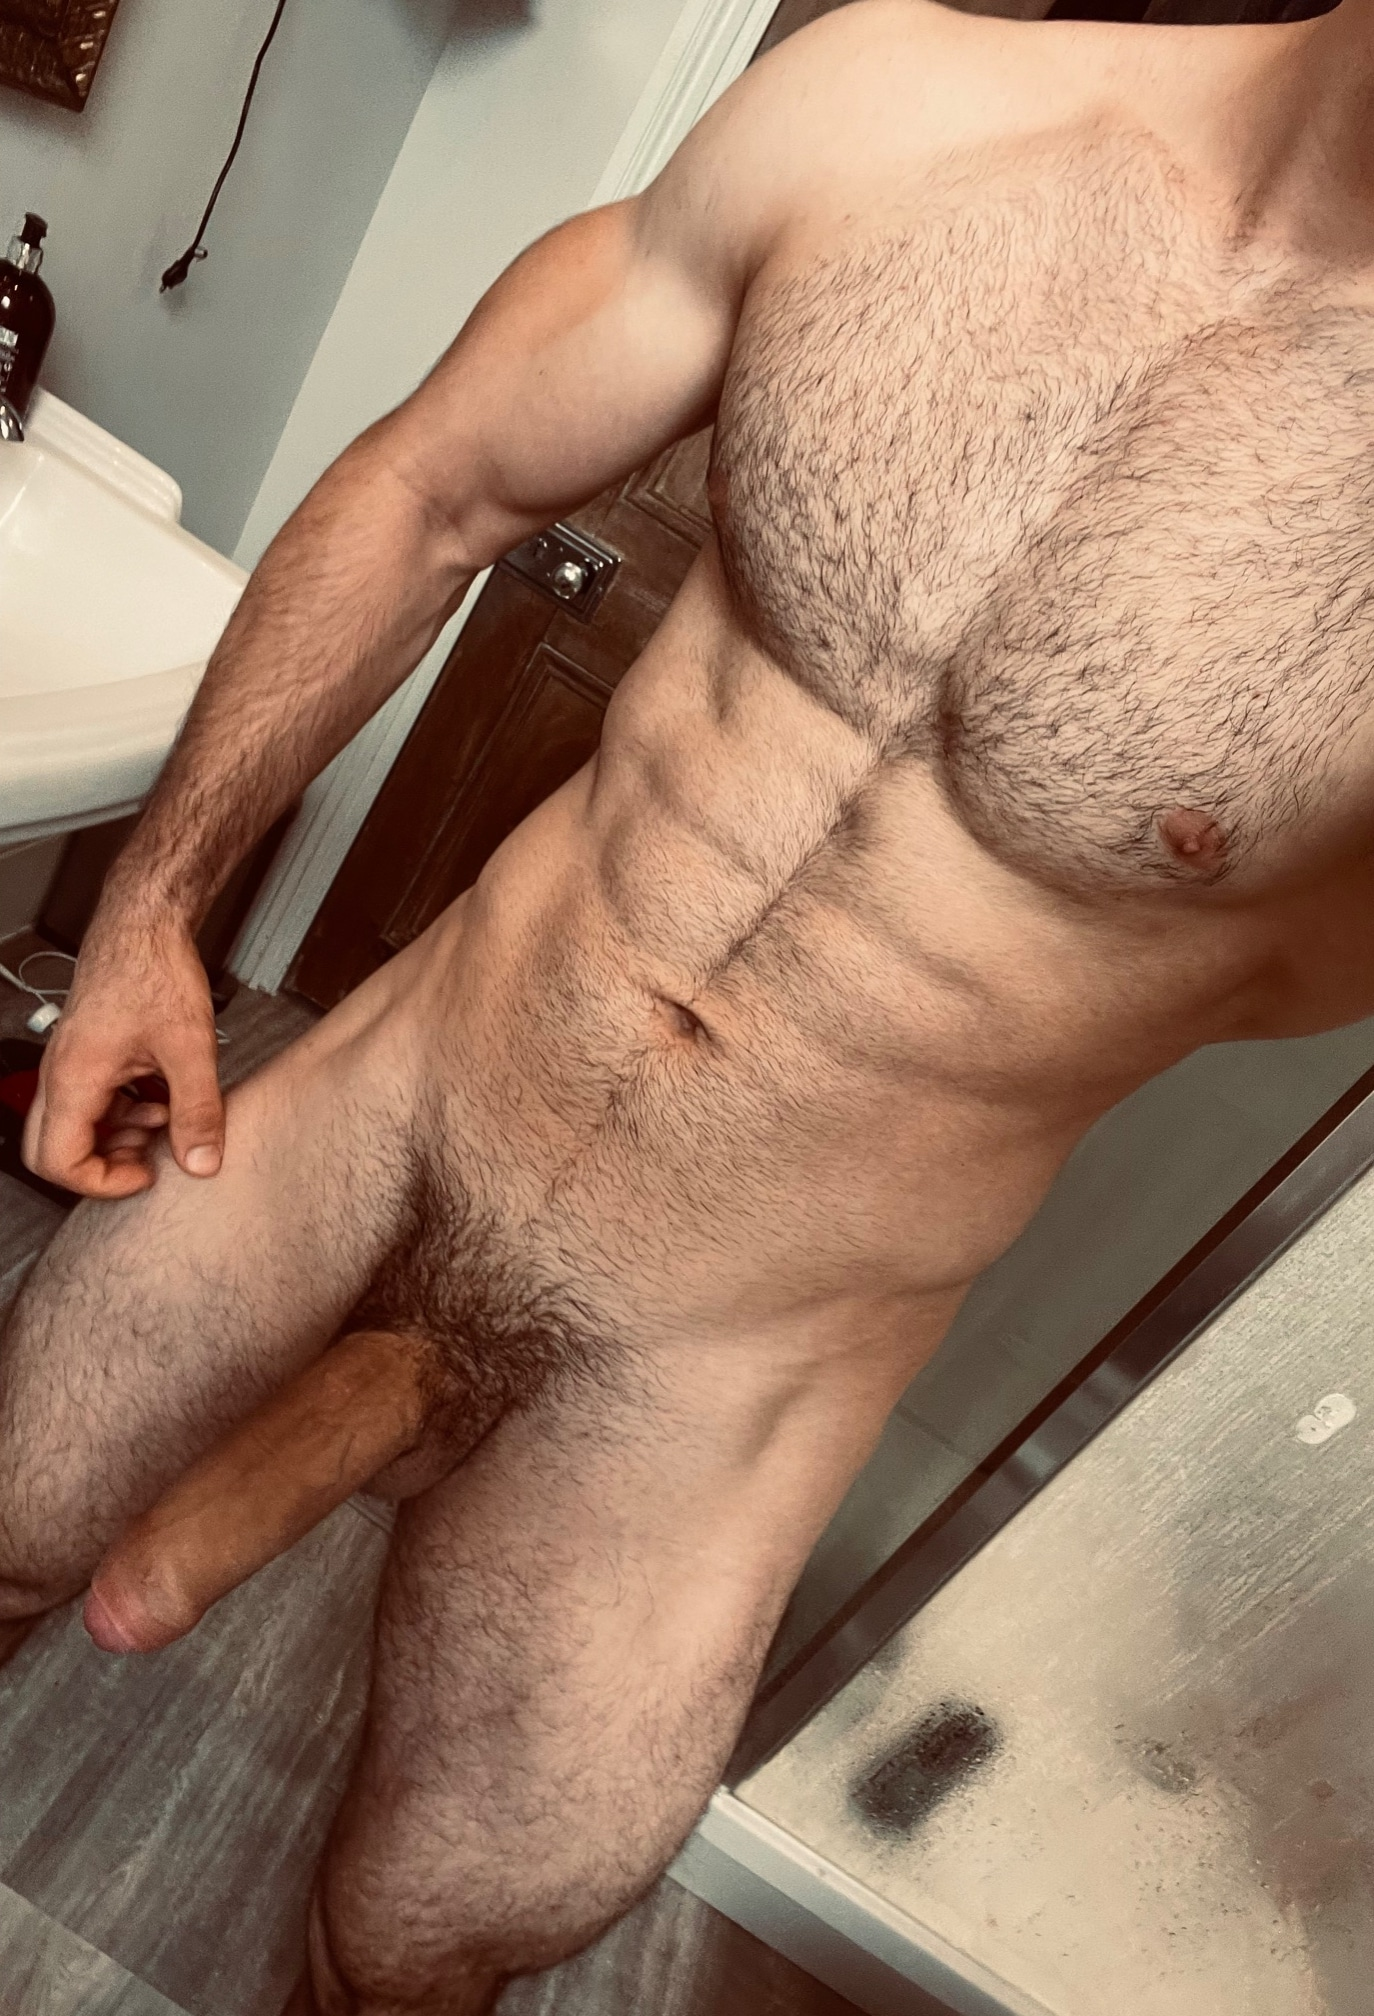 Hunk with a hairy body